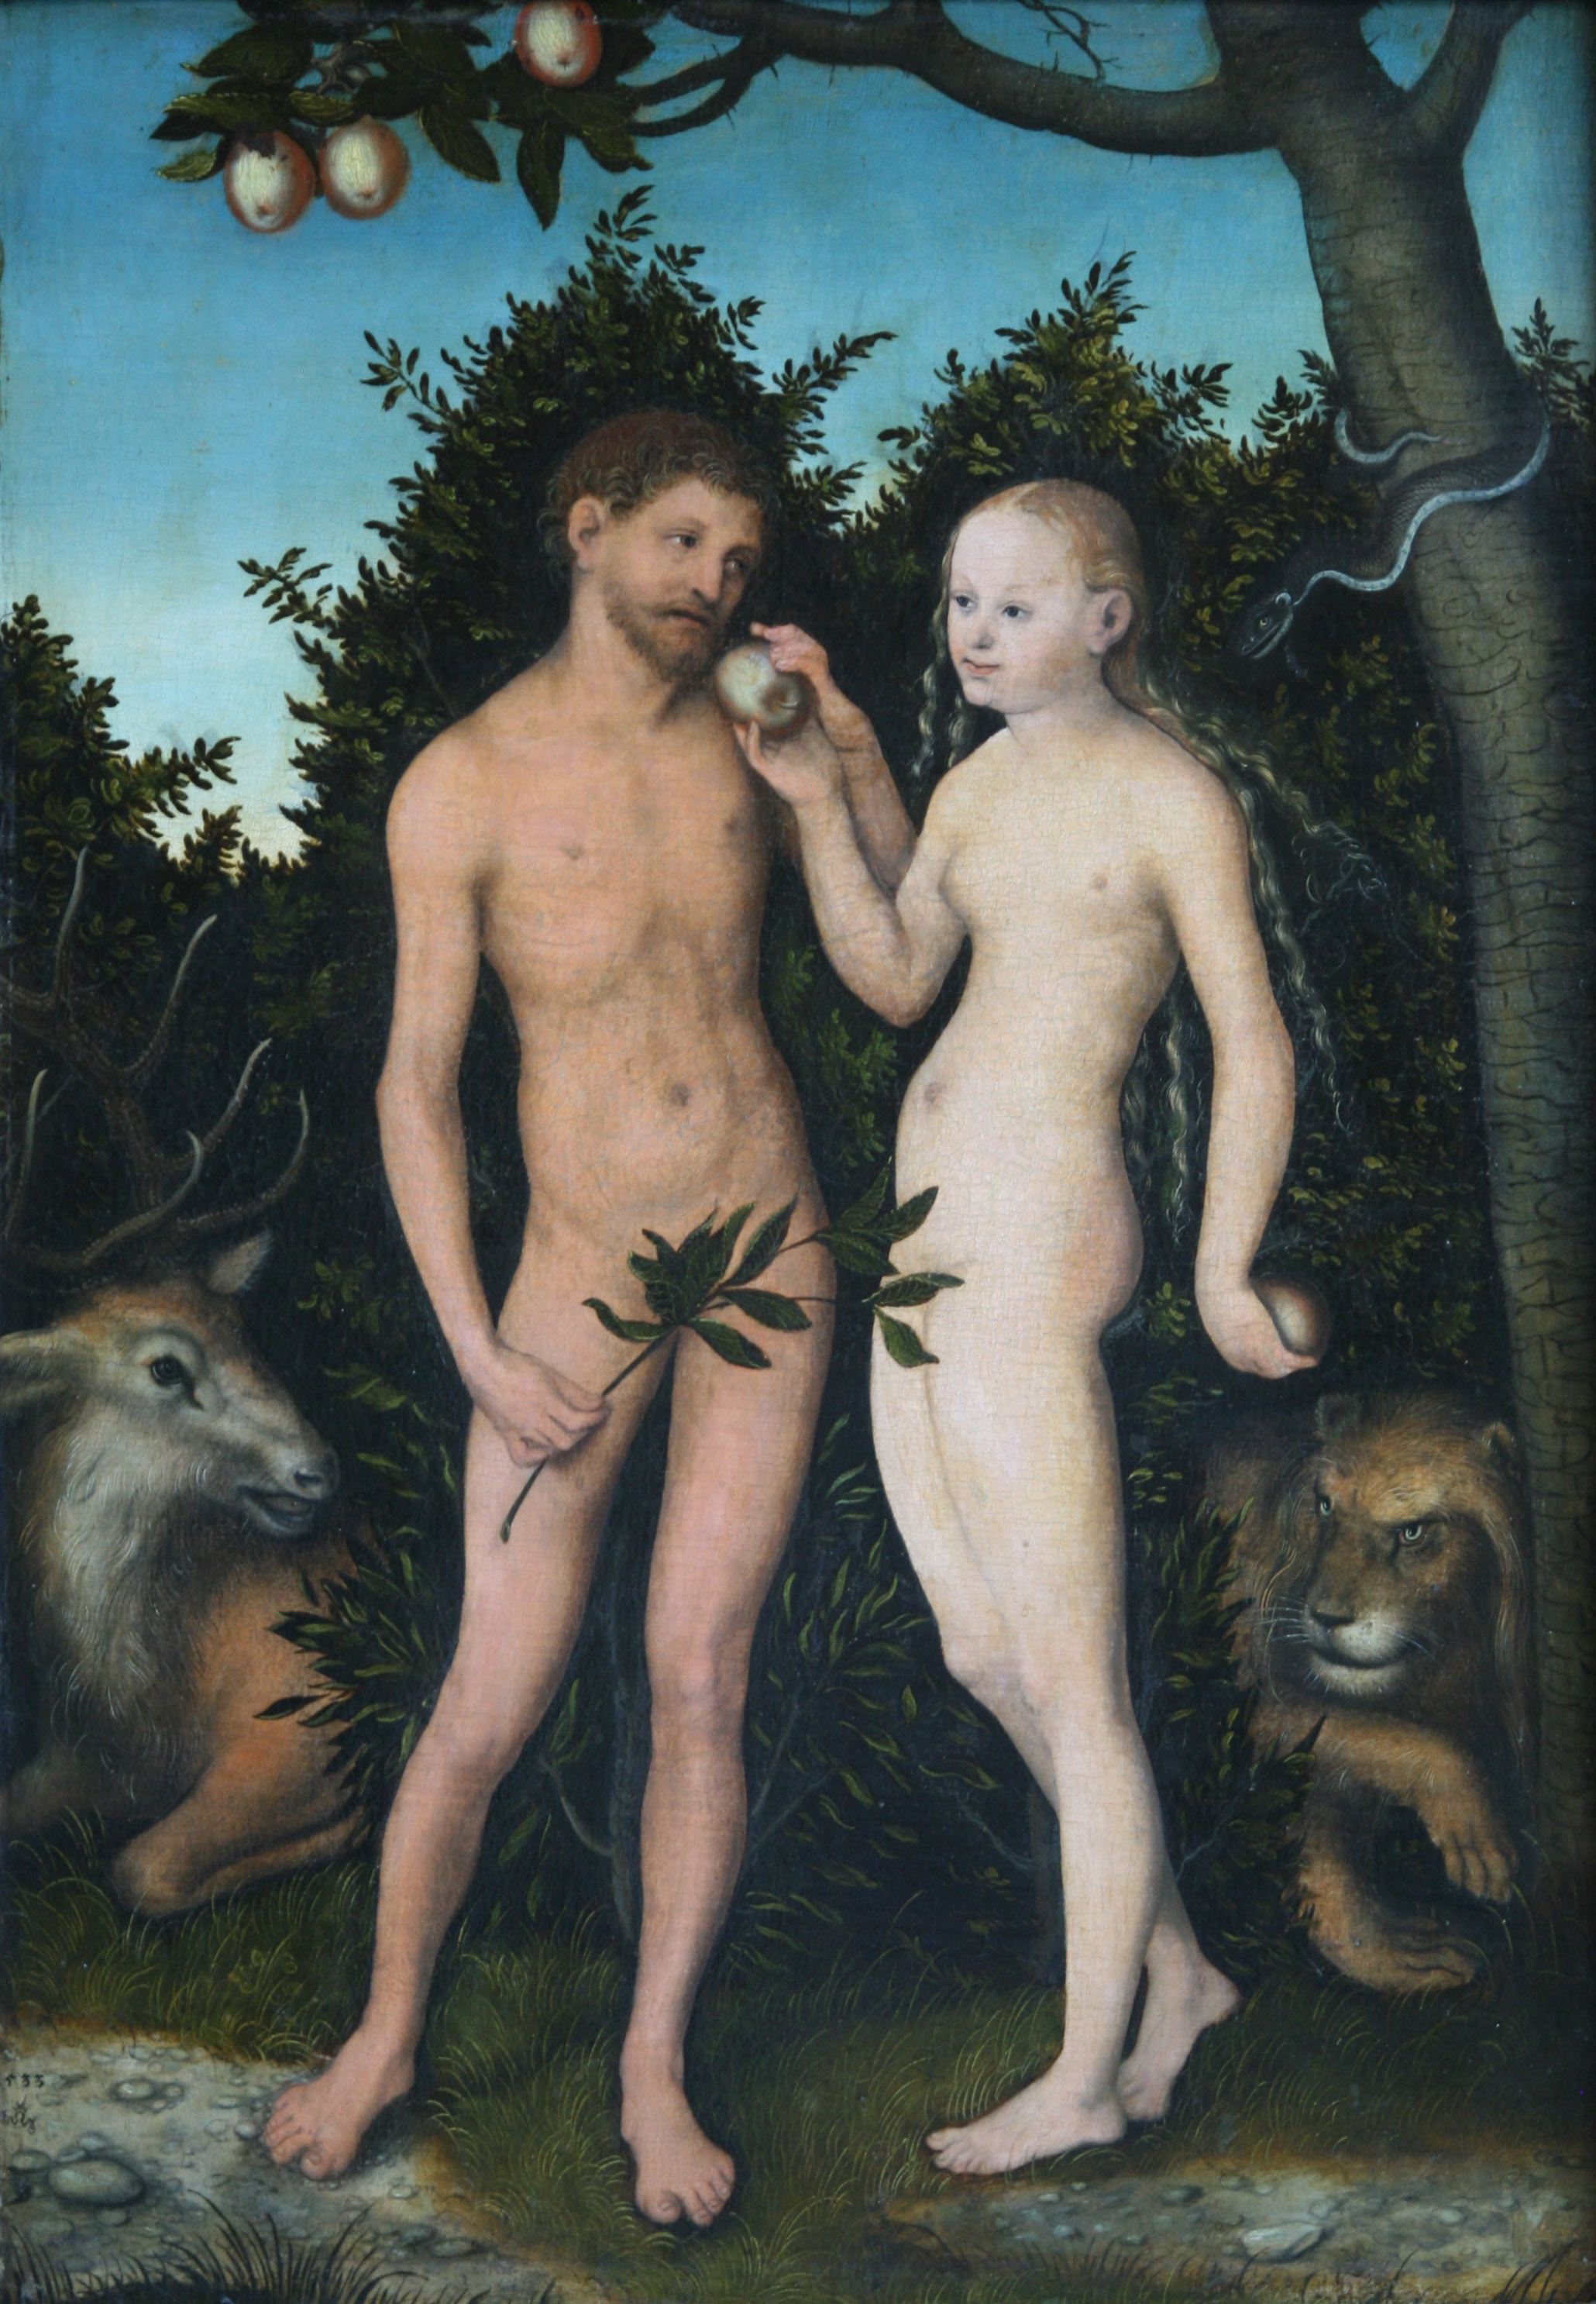 Adam and eve in garden of eden studying genesis chapter 2